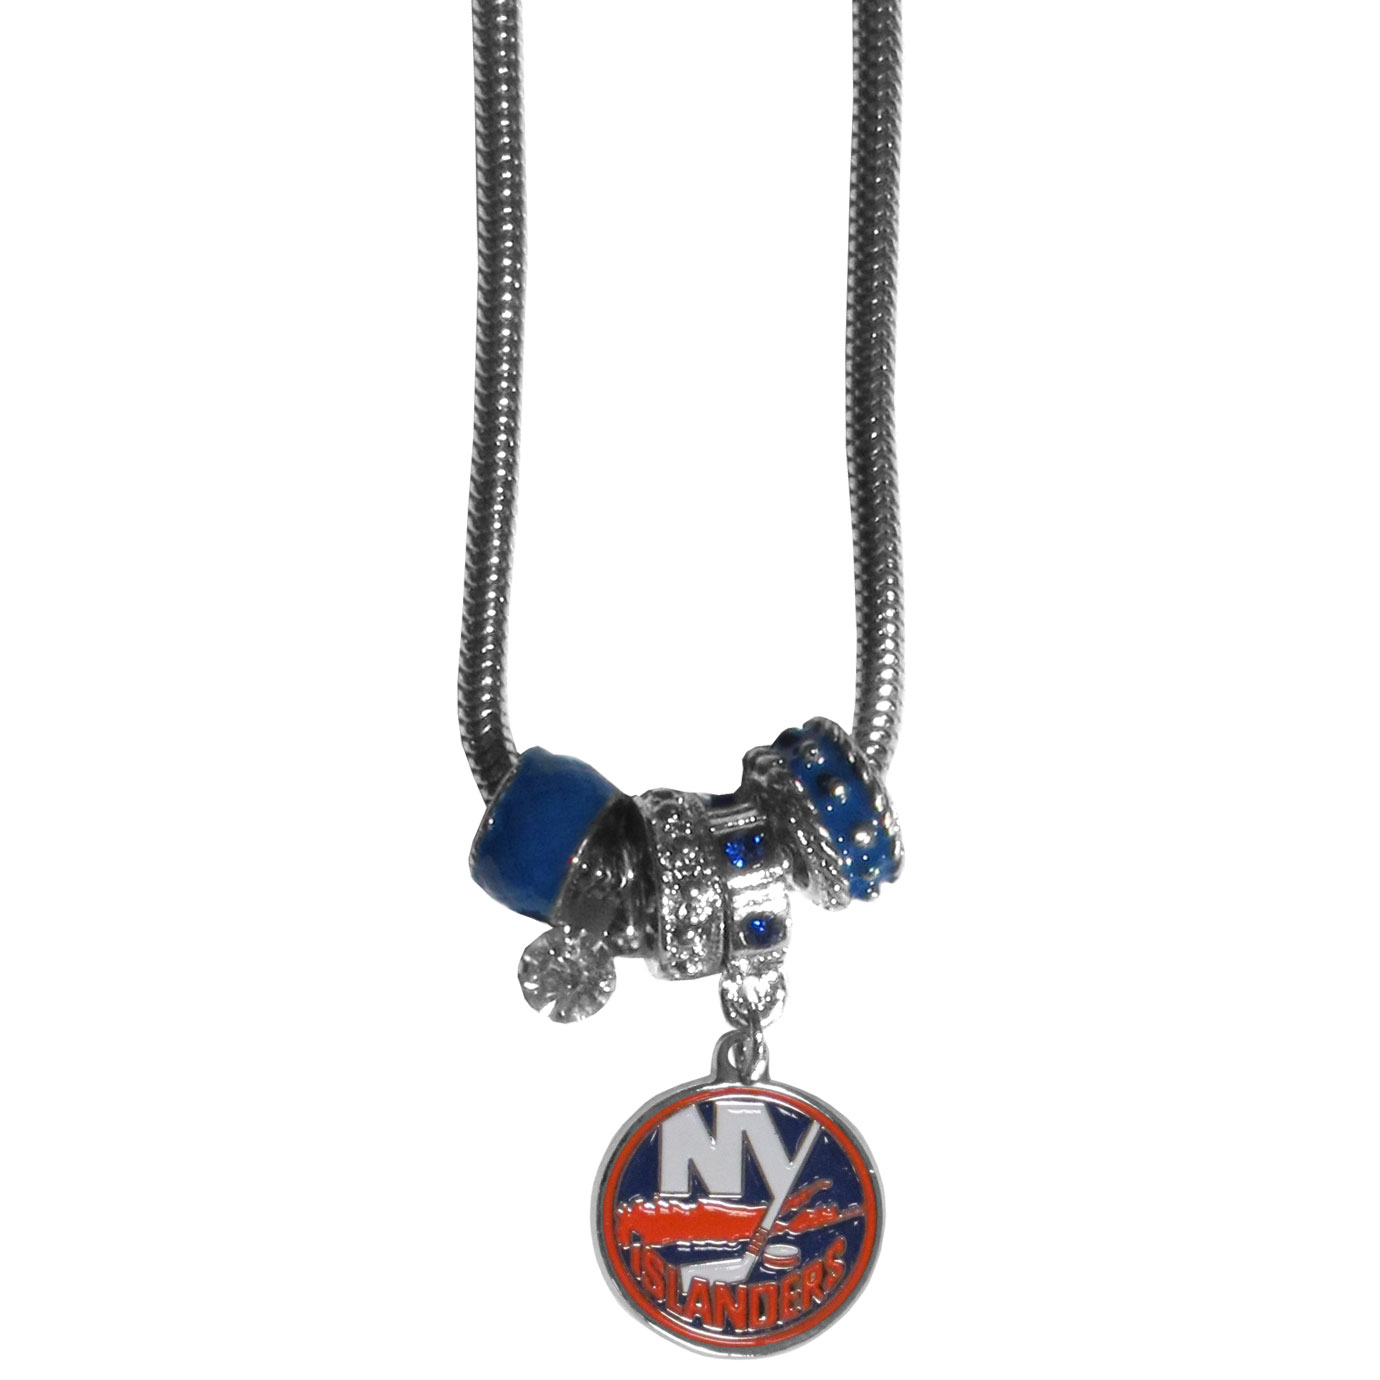 New York Islanders Euro Bead Necklace - We have combined the wildly popular Euro style beads with your favorite team to create our New York Islanders euro bead necklace. The 18 inch snake chain features 4 Euro beads with enameled New York Islanders colors and rhinestone accents with a high polish, nickel free charm and rhinestone charm. Perfect way to show off your New York Islanders pride.